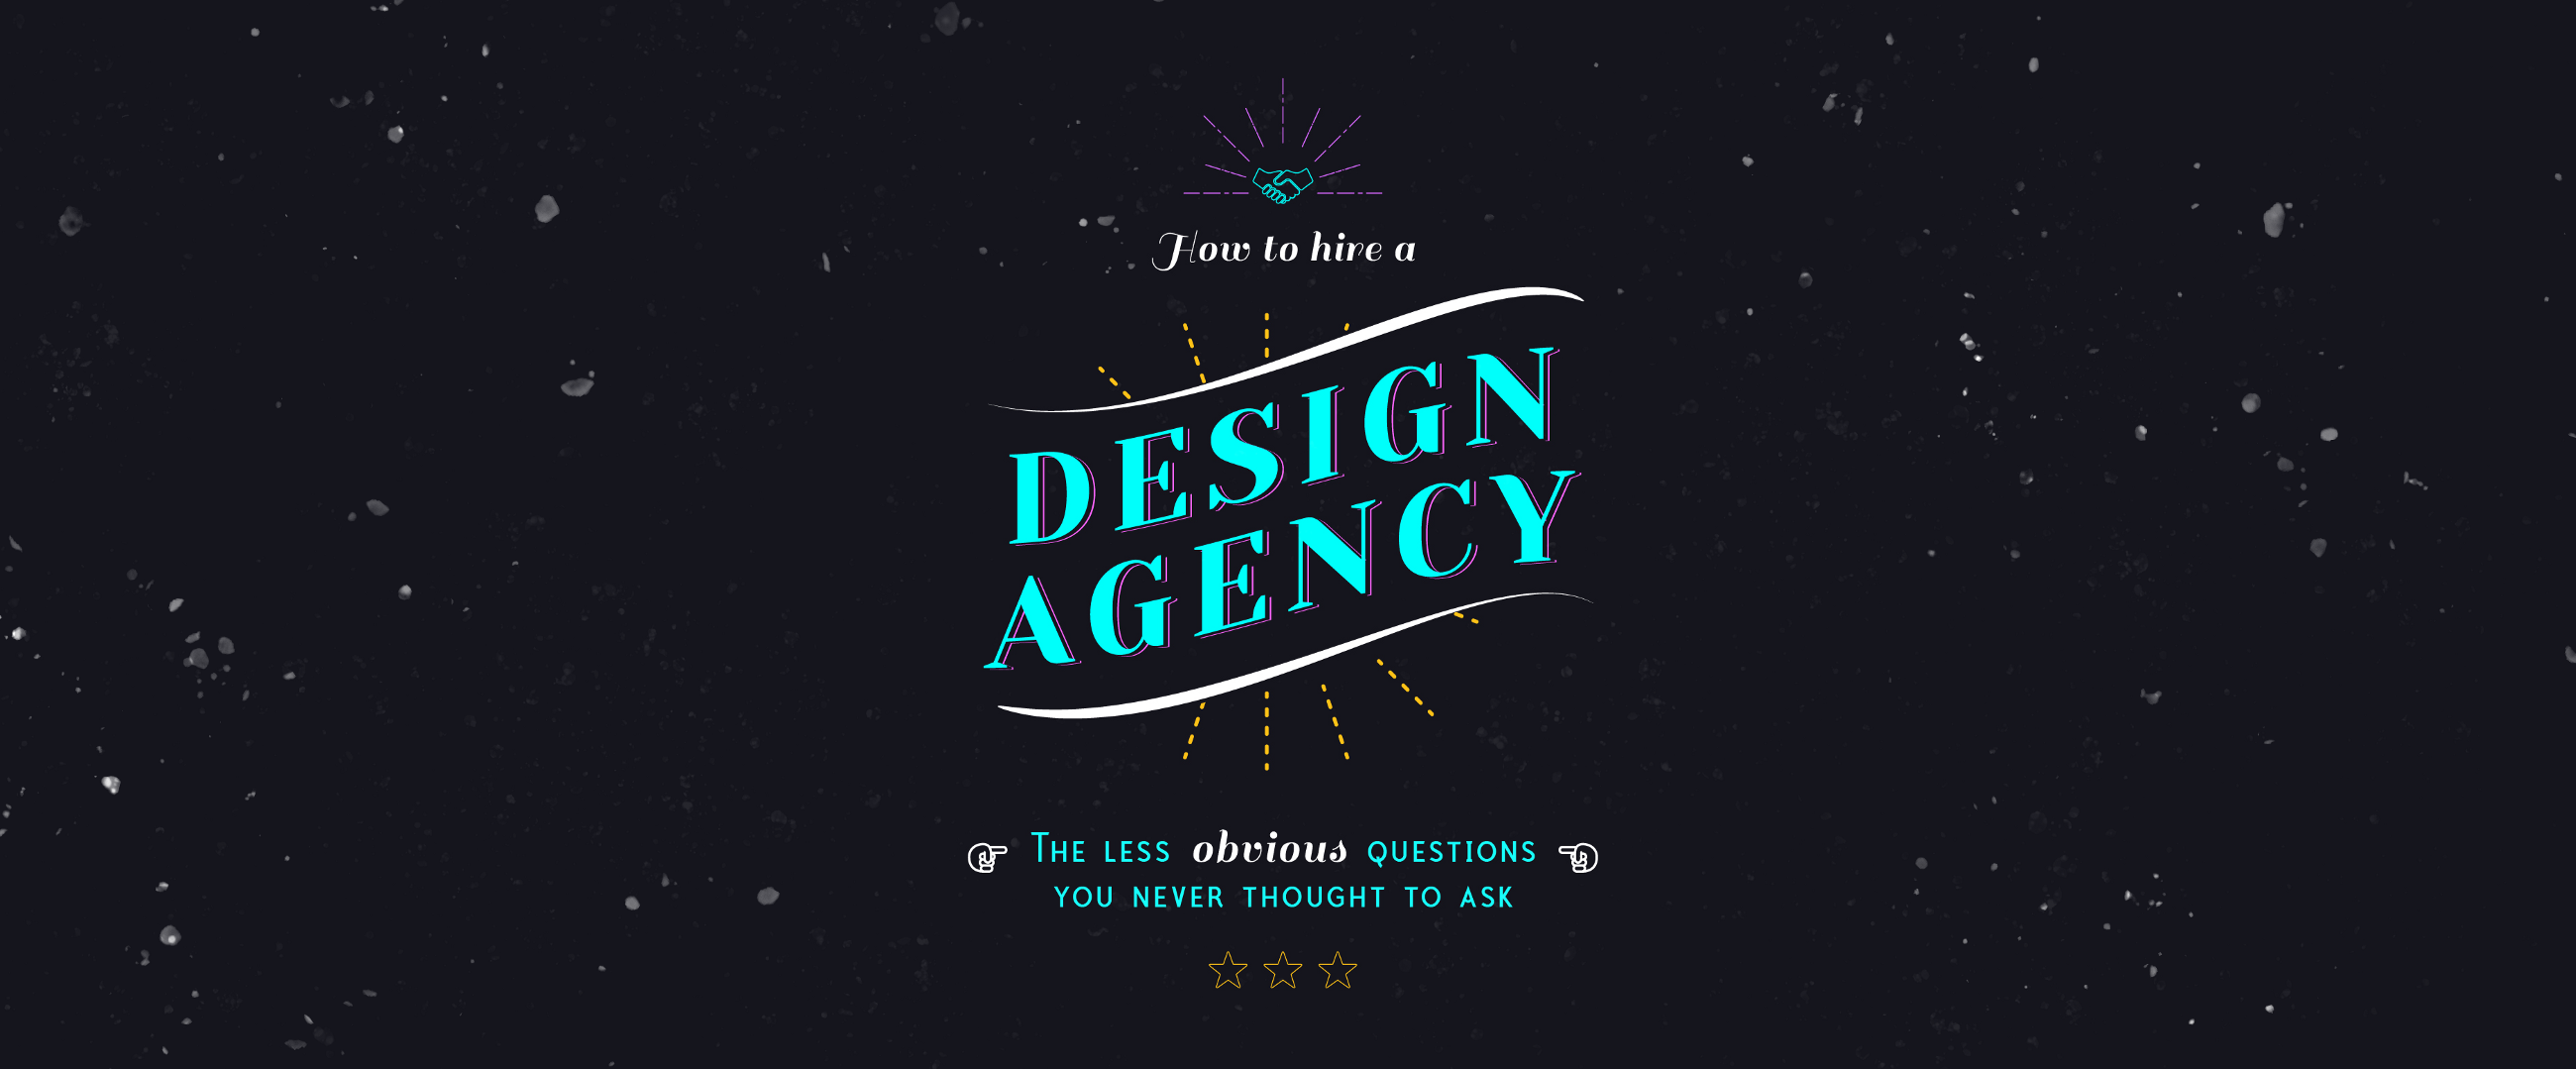 06c306590 How to hire a design agency – Adi Ofir – Medium